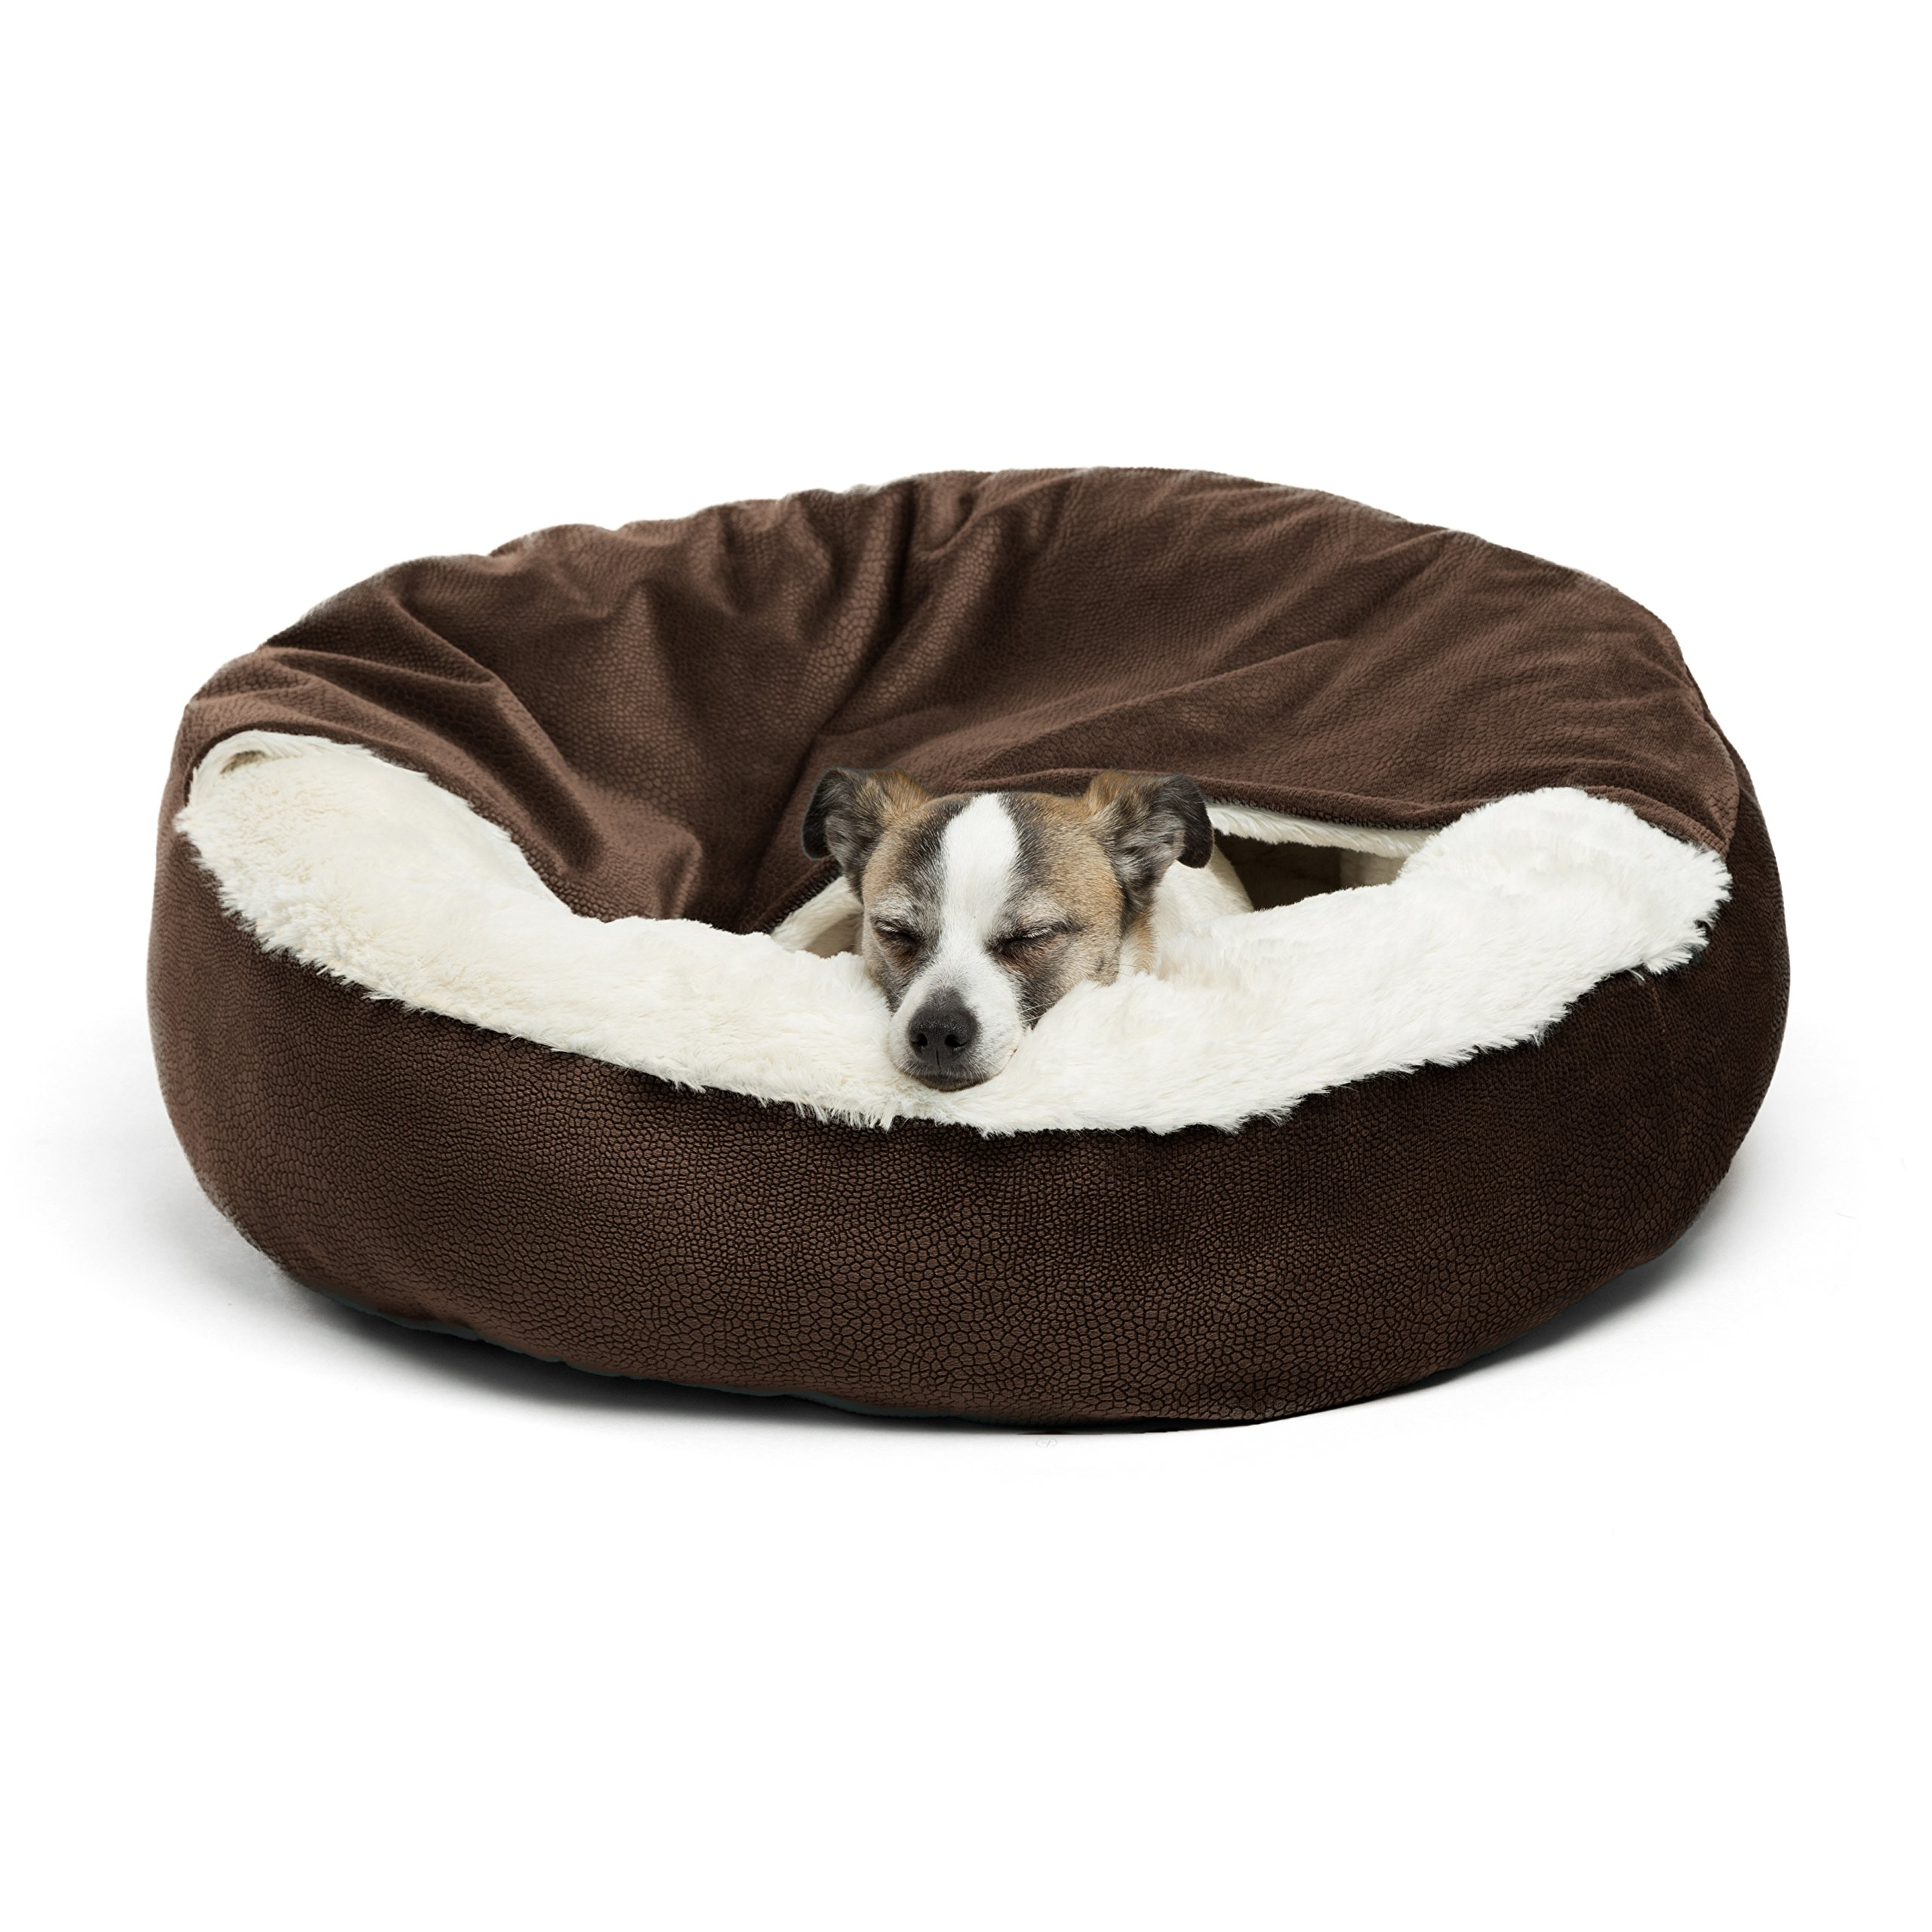 Best Friends by Sheri Cozy Cuddler, – Luxury Dog and Cat Bed with Blanket for Warmth and Security – Offers Head, Neck…